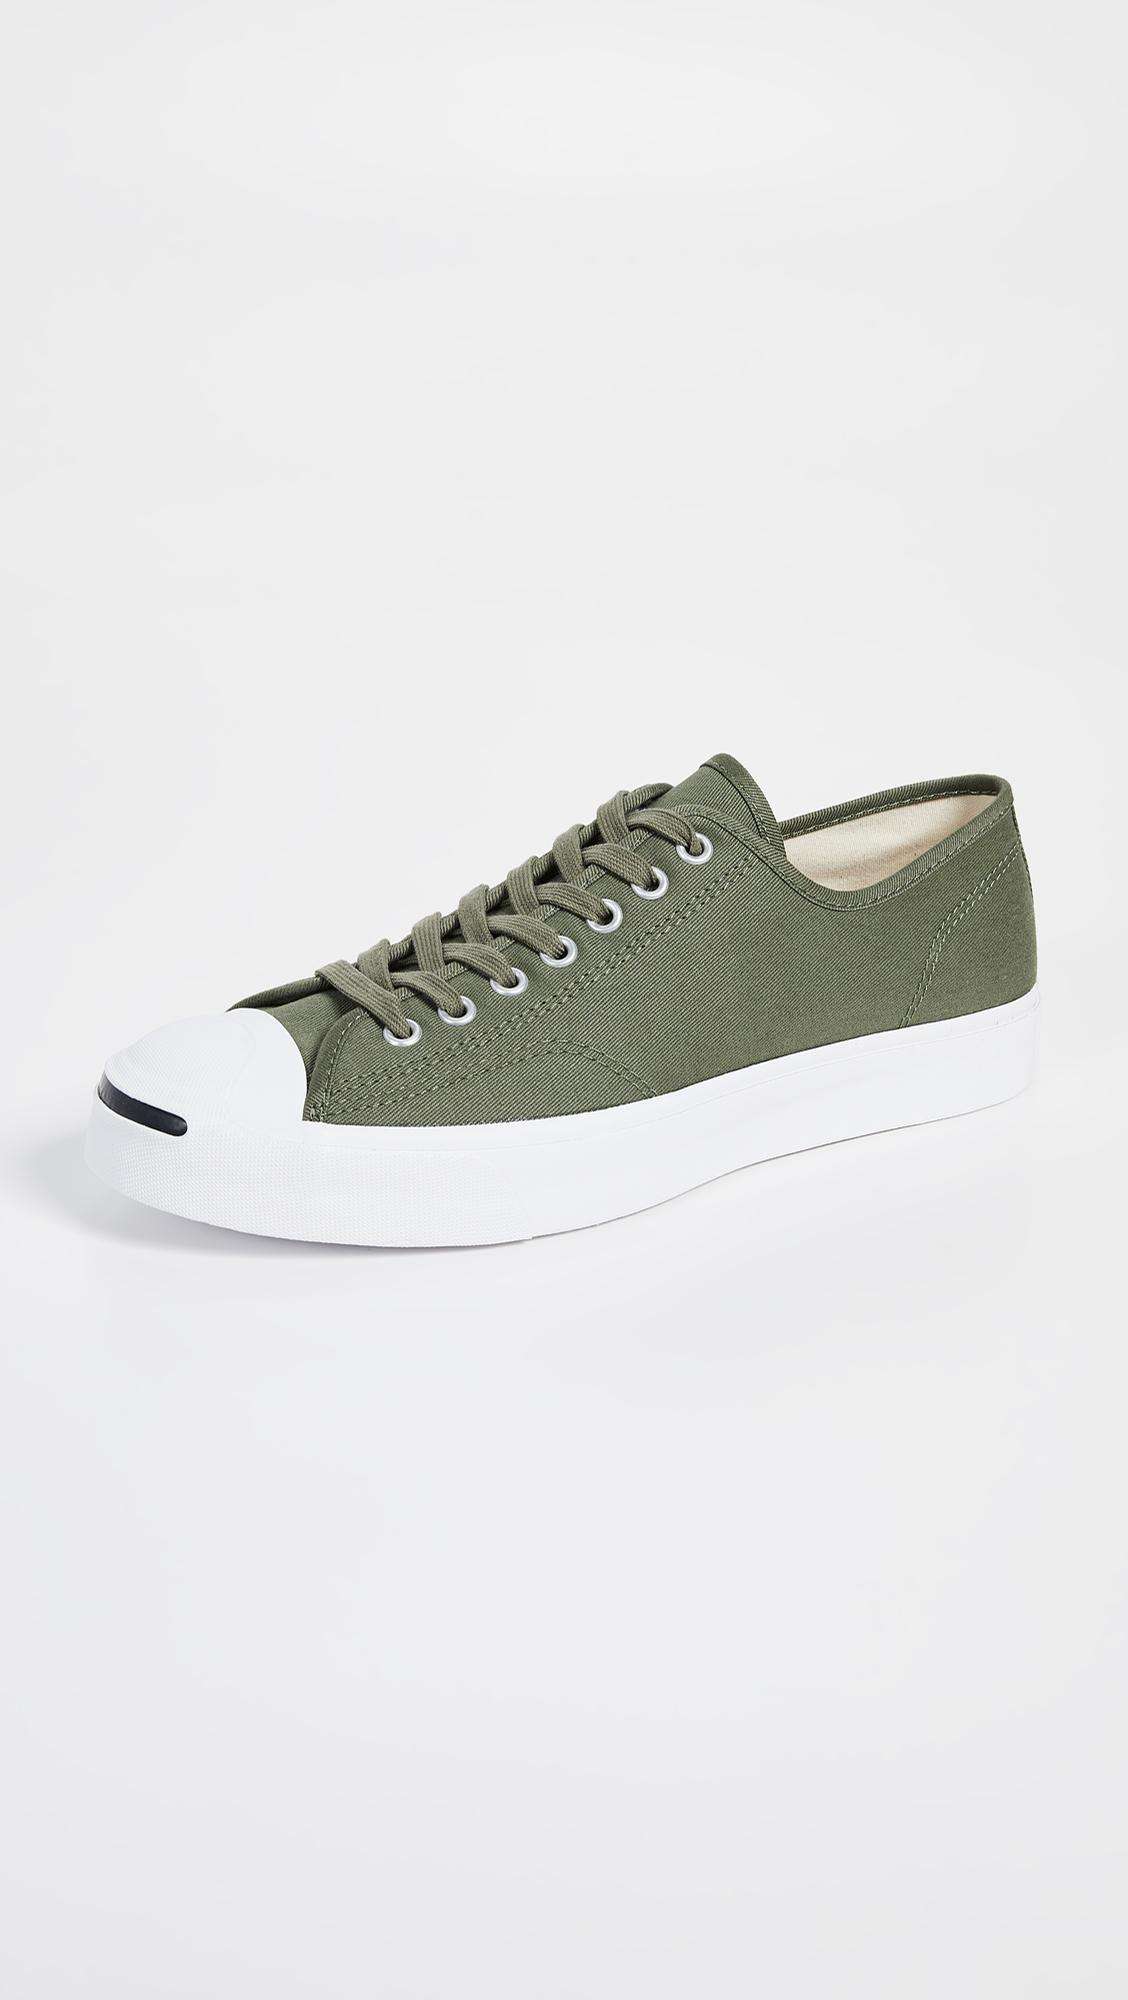 86b299cccc2c Lyst - Converse Jack Purcell Gold Standard Canvas Oxfords in Green ...